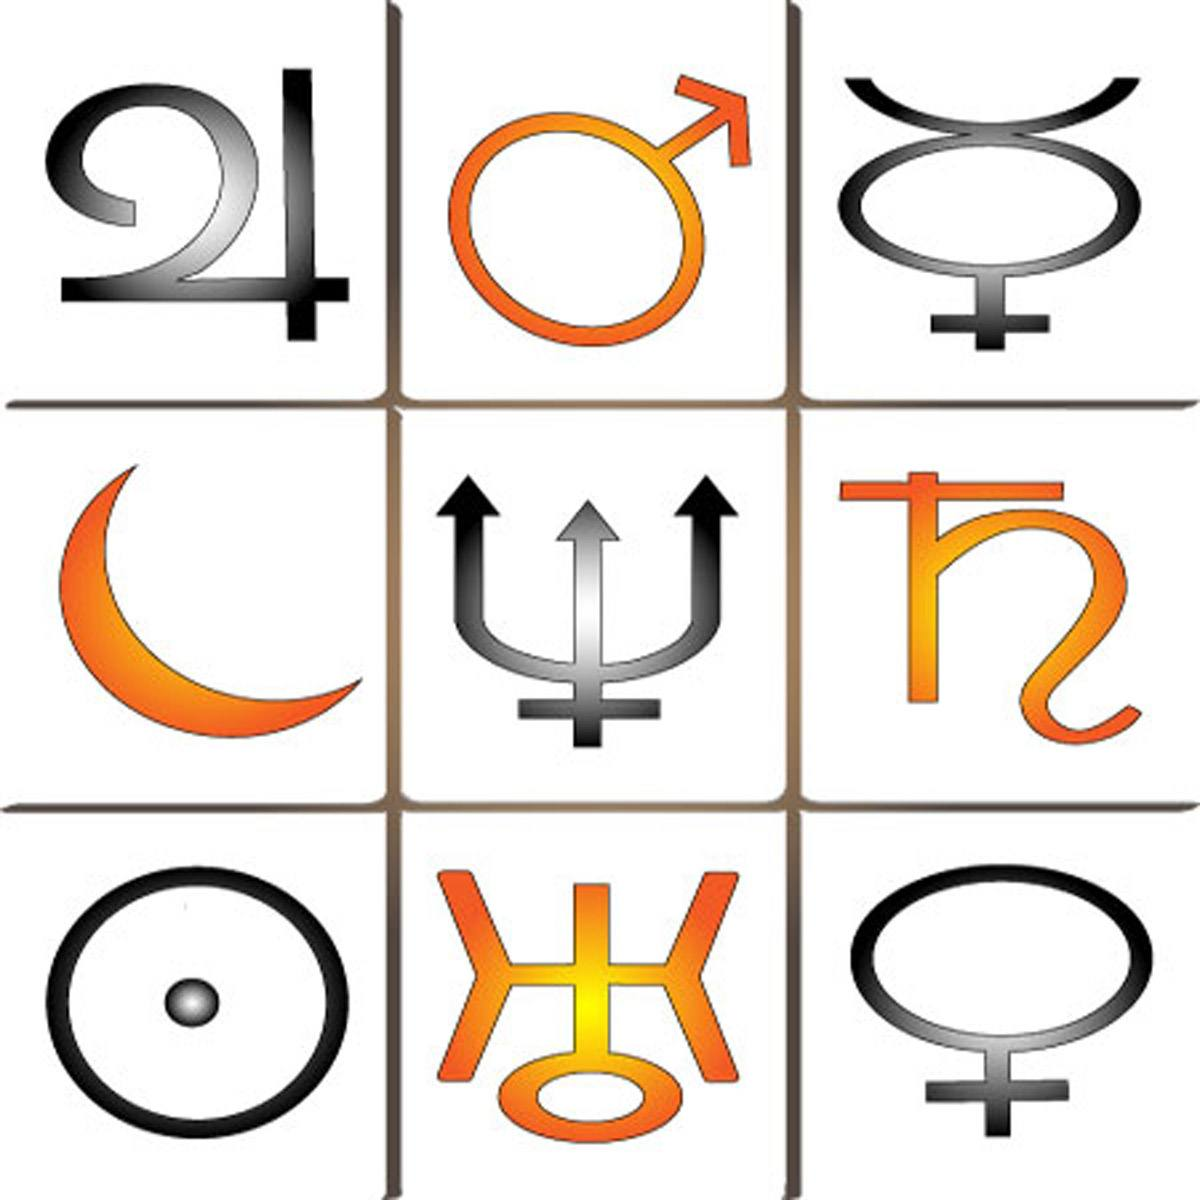 A grid of three rows and three columns of 9 planetary symbols.